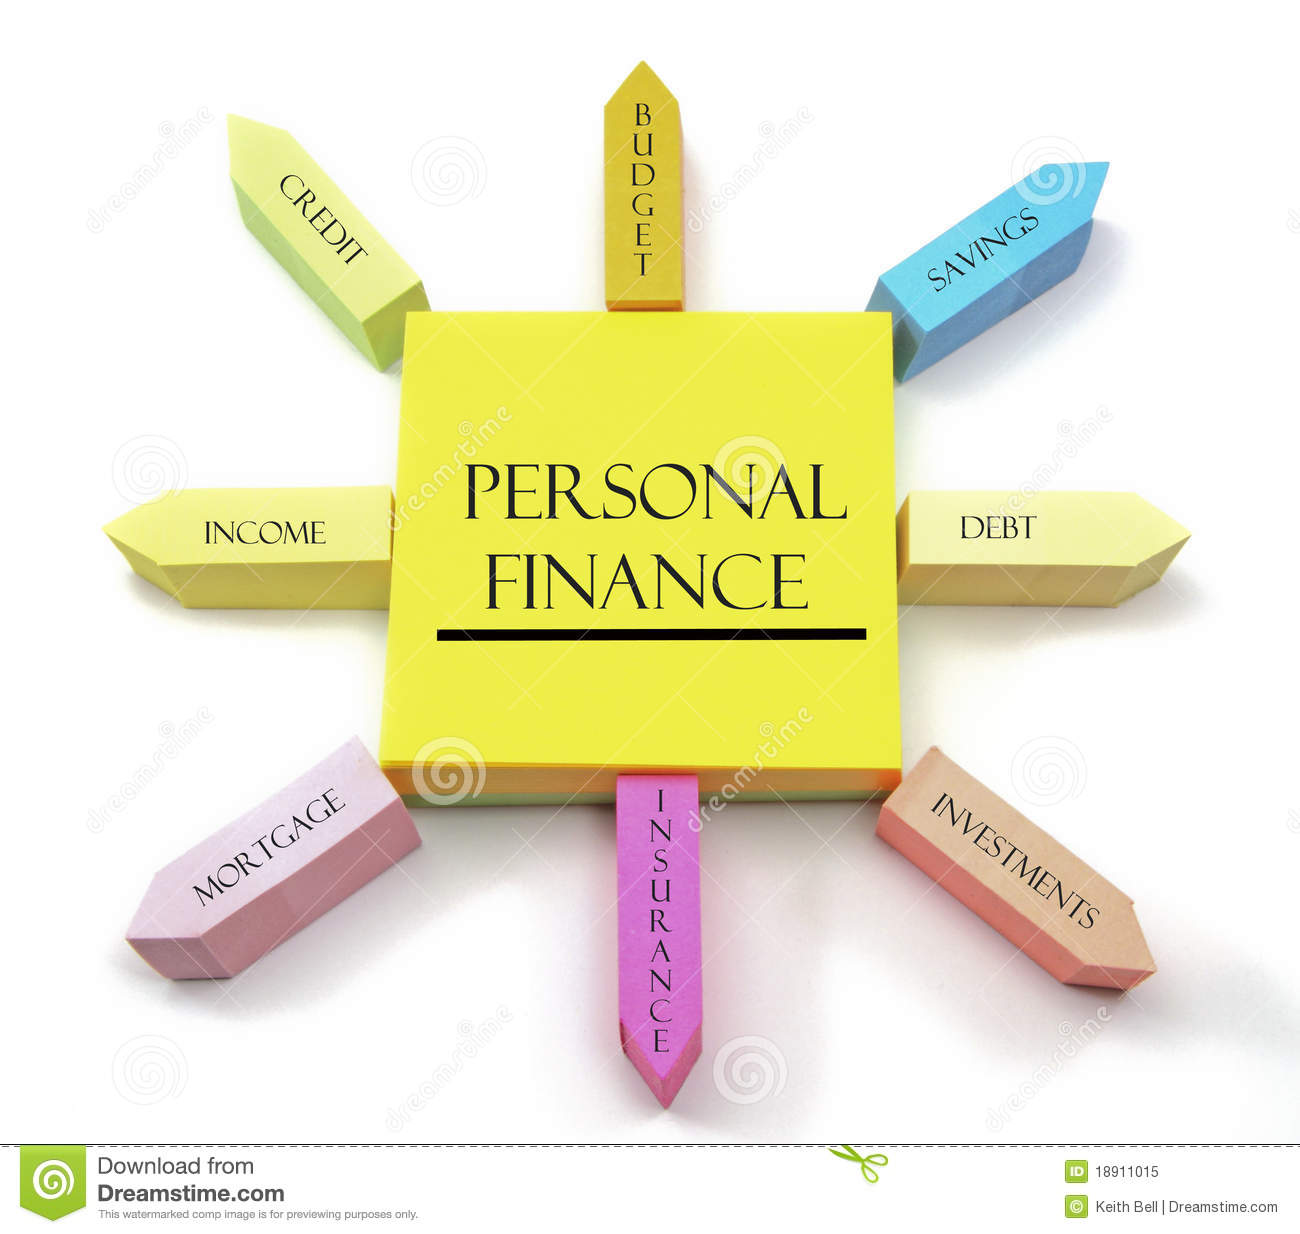 personal-finance-concept-arranged-sticky-notes-18911015.jpg